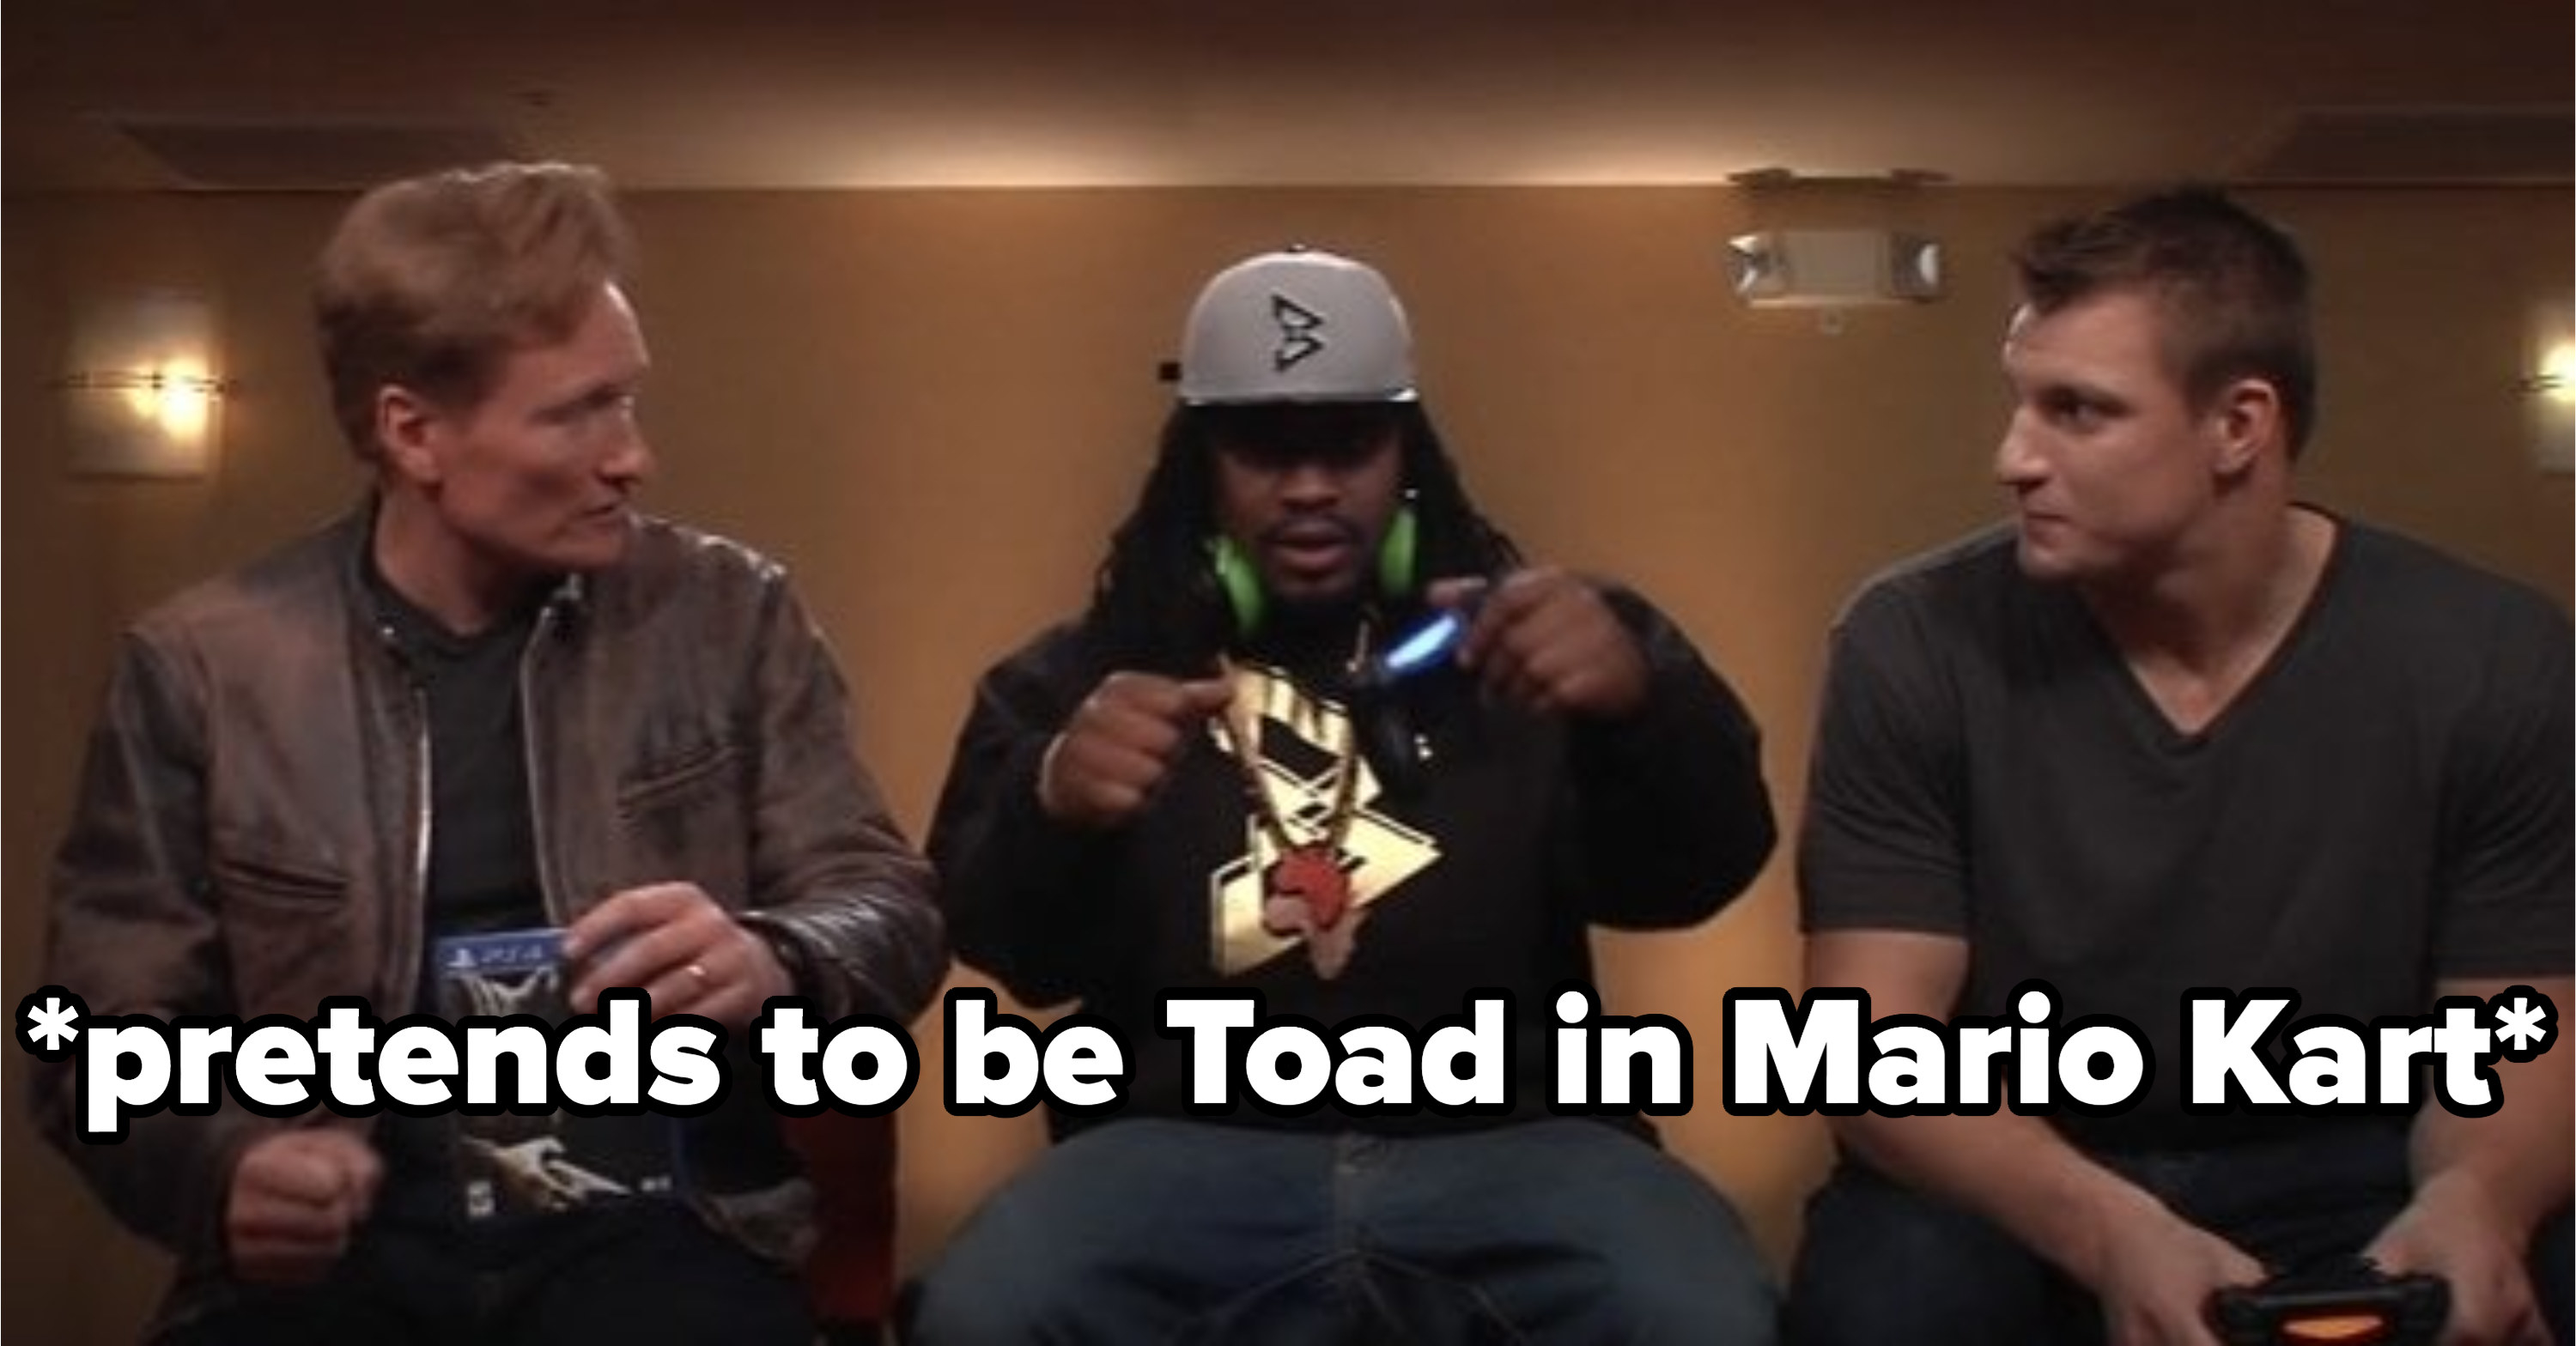 Conan, Marshawn Lynch, and Rob Gronkowski sitting on stools and playing video games